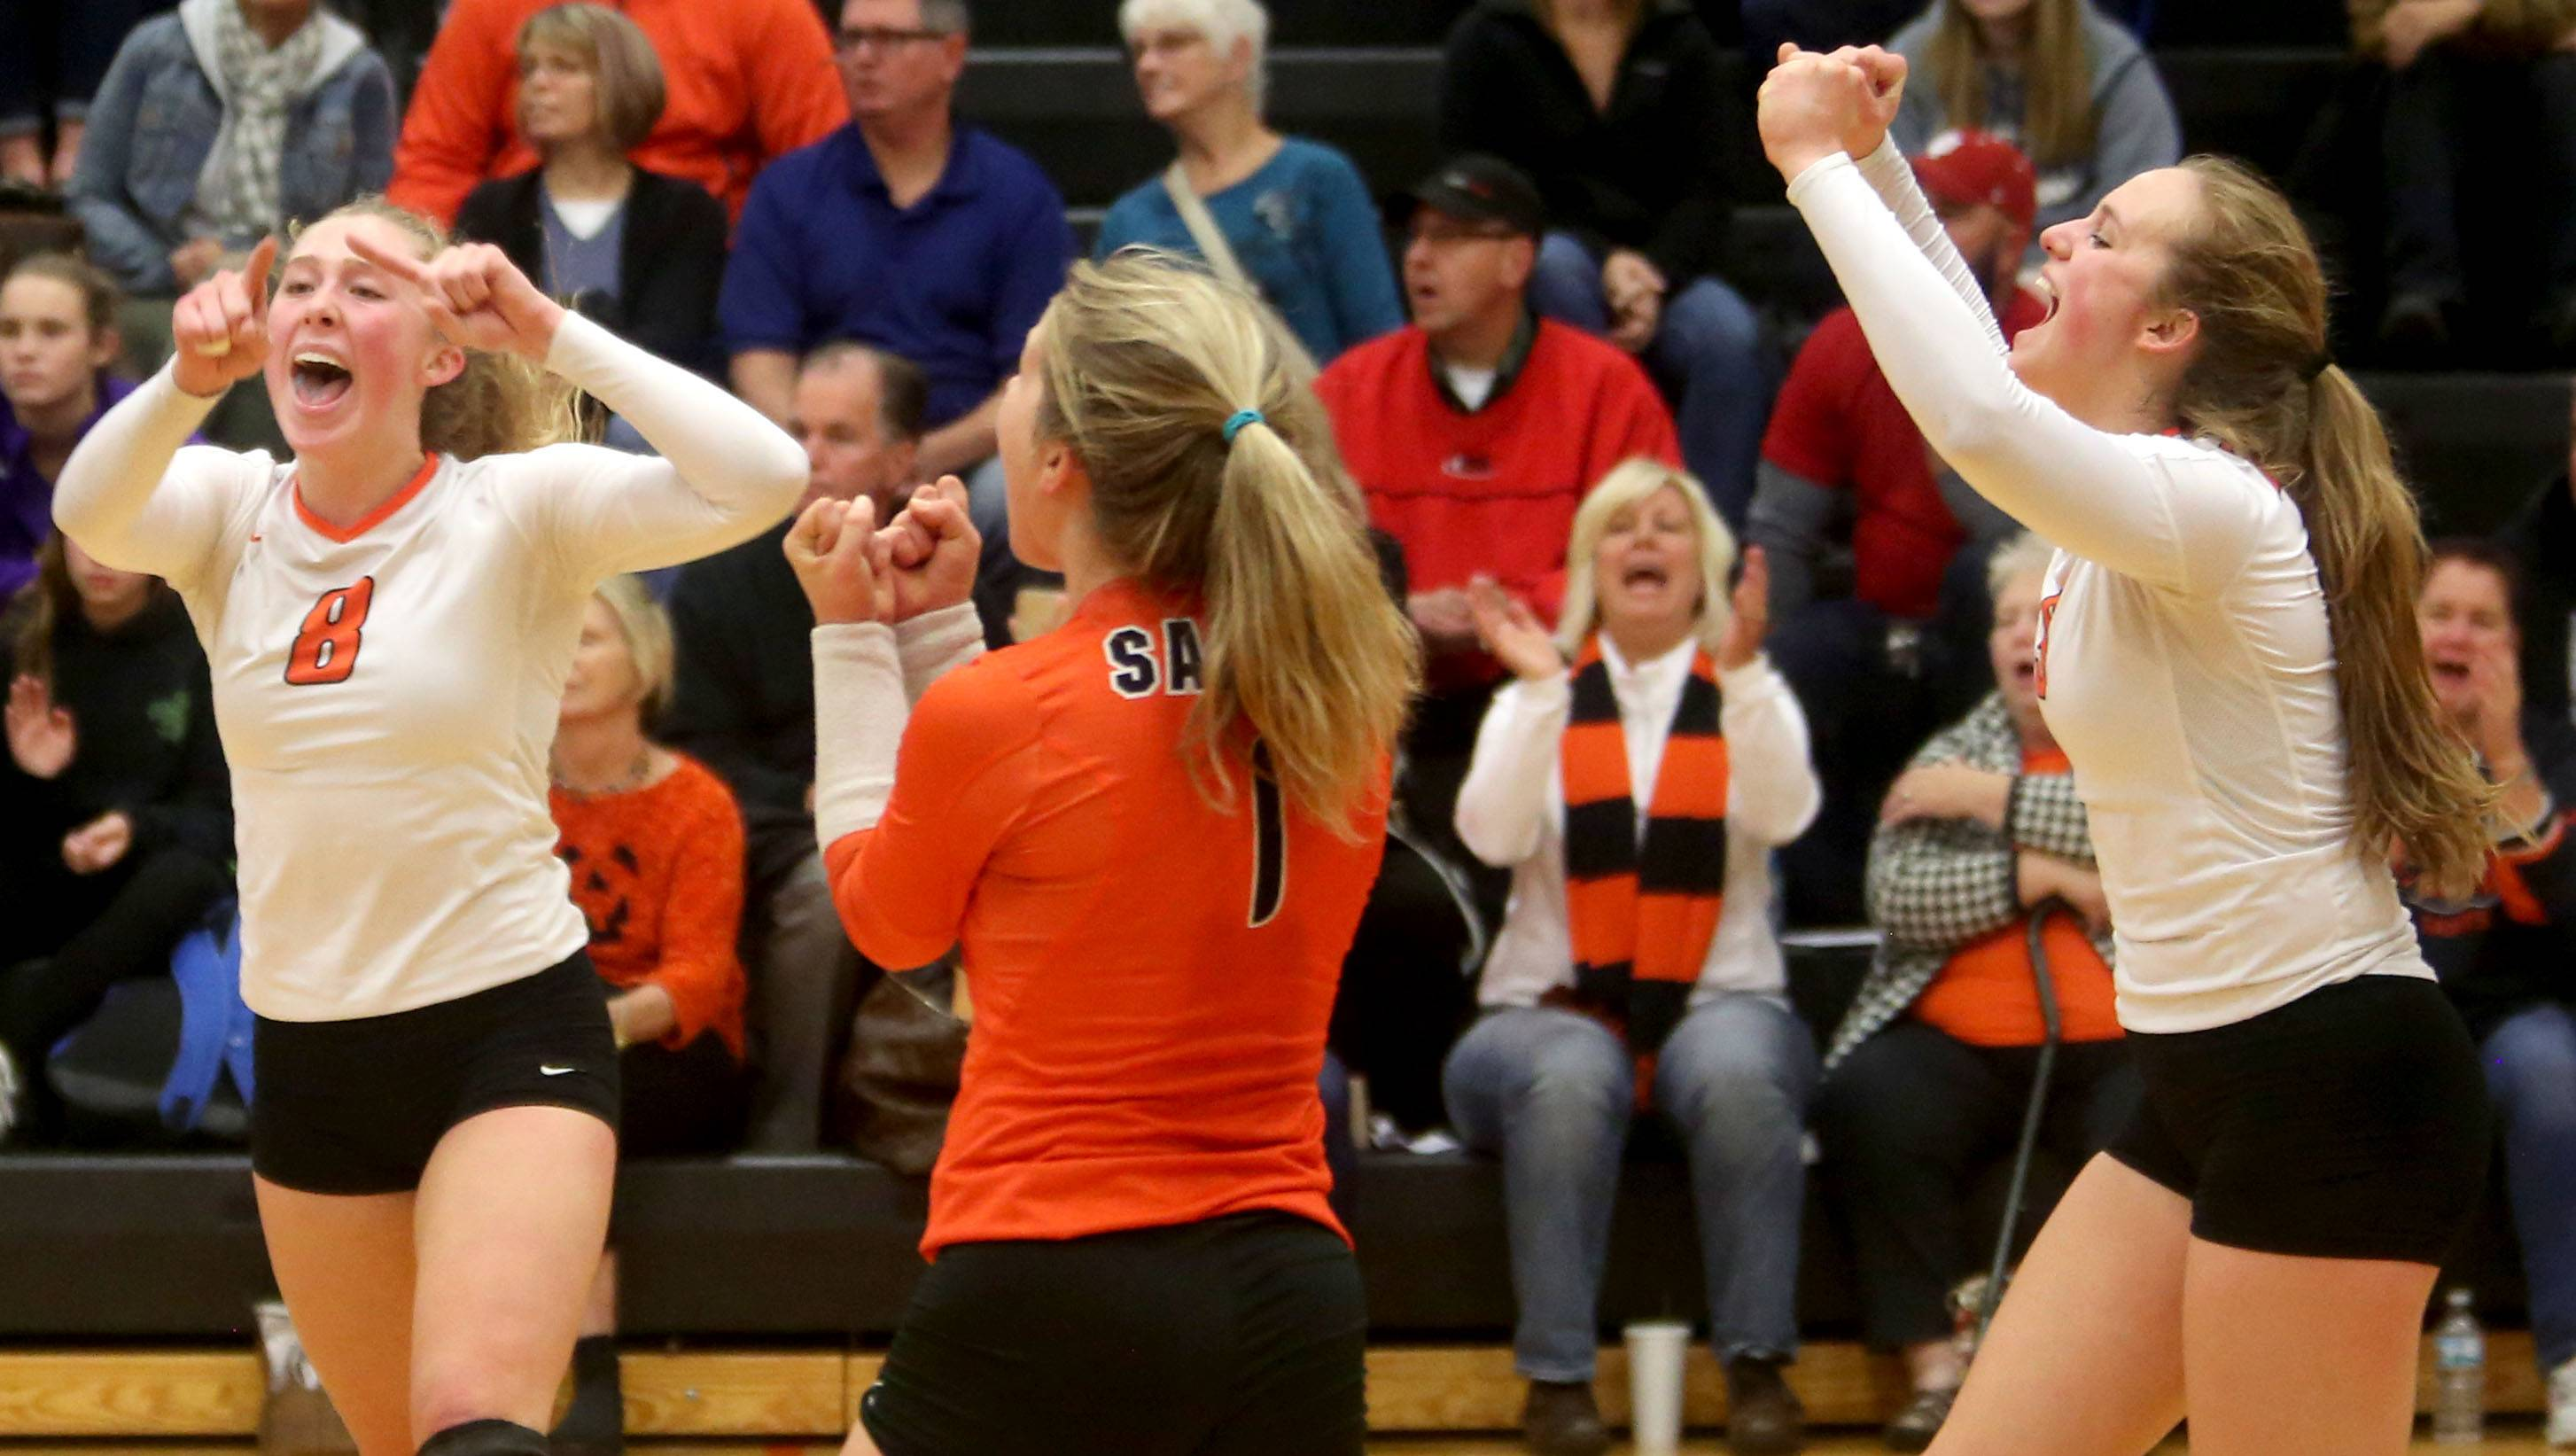 The St. Charles East Saints begin to celebrate a win over Huntley during sectional semifinal varsity volleyball action at Chuck Dayton Gymnasium on the campus of DeKalb High School Monday night.